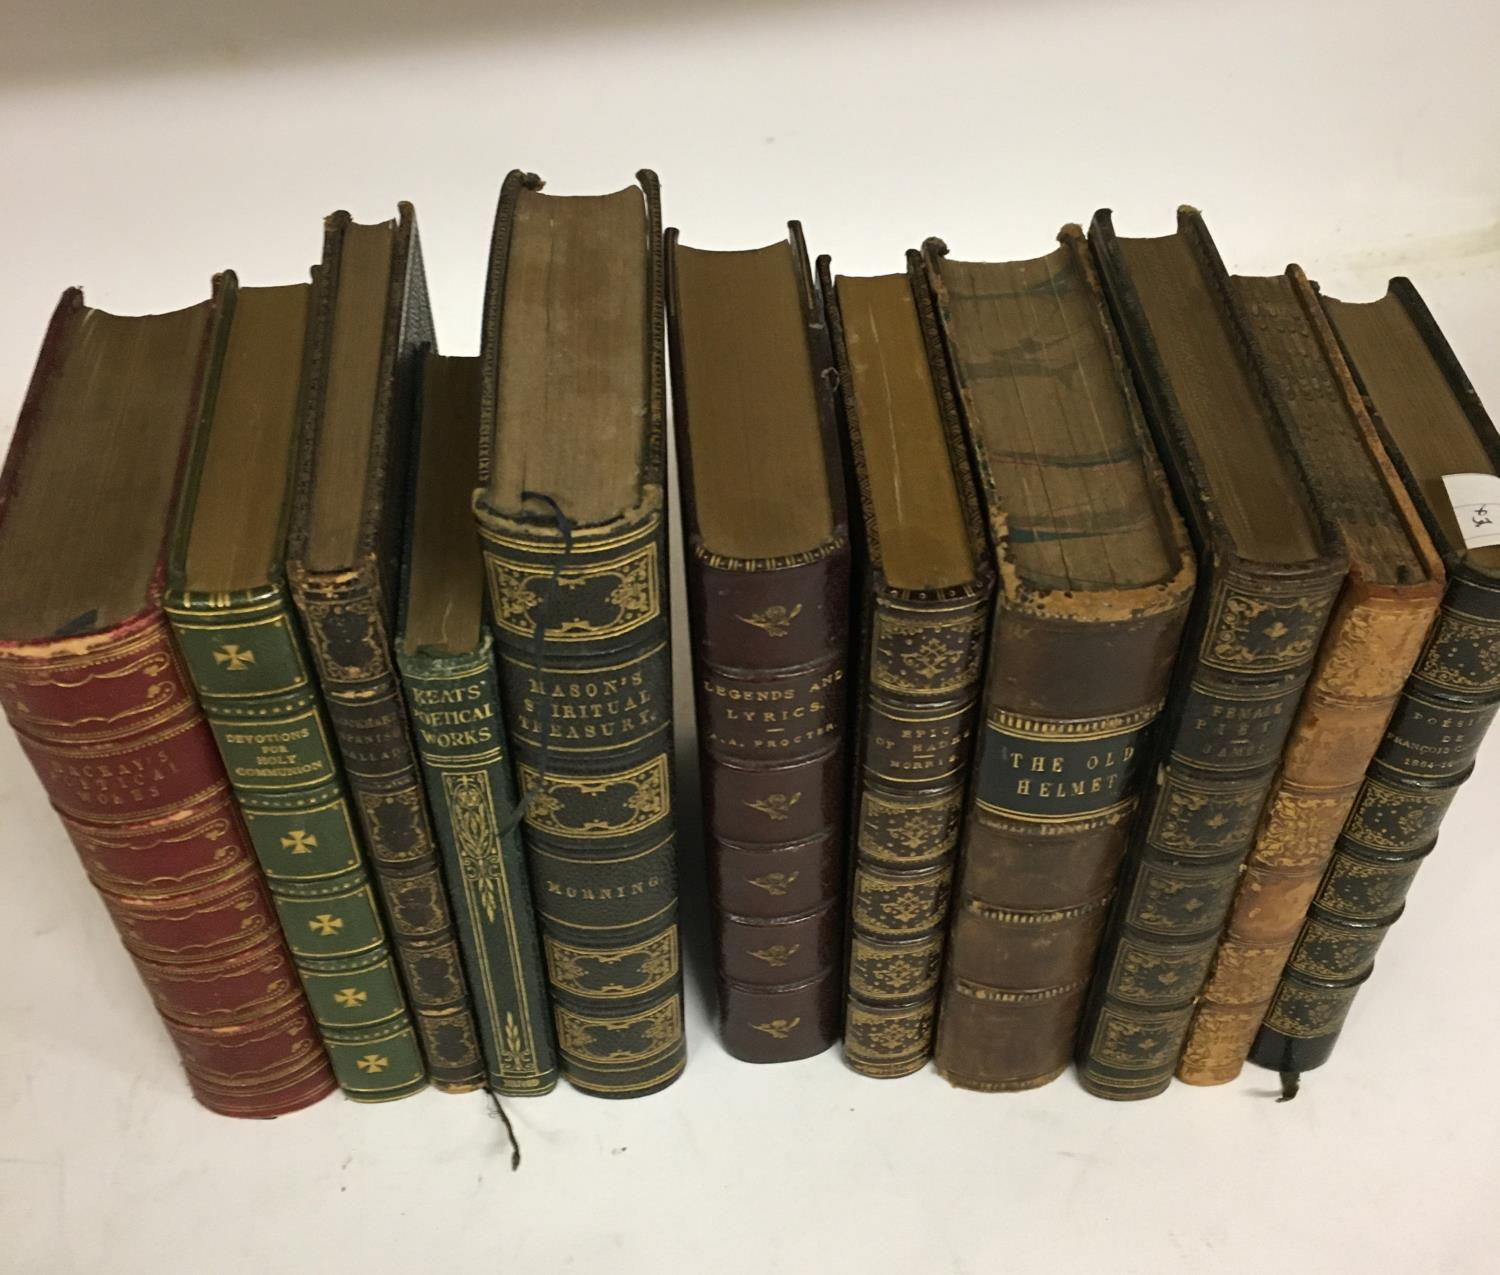 Shakespeare, William. The Complete Works, 3 volumes, plates, contemporary full morocco, decorated - Image 5 of 7